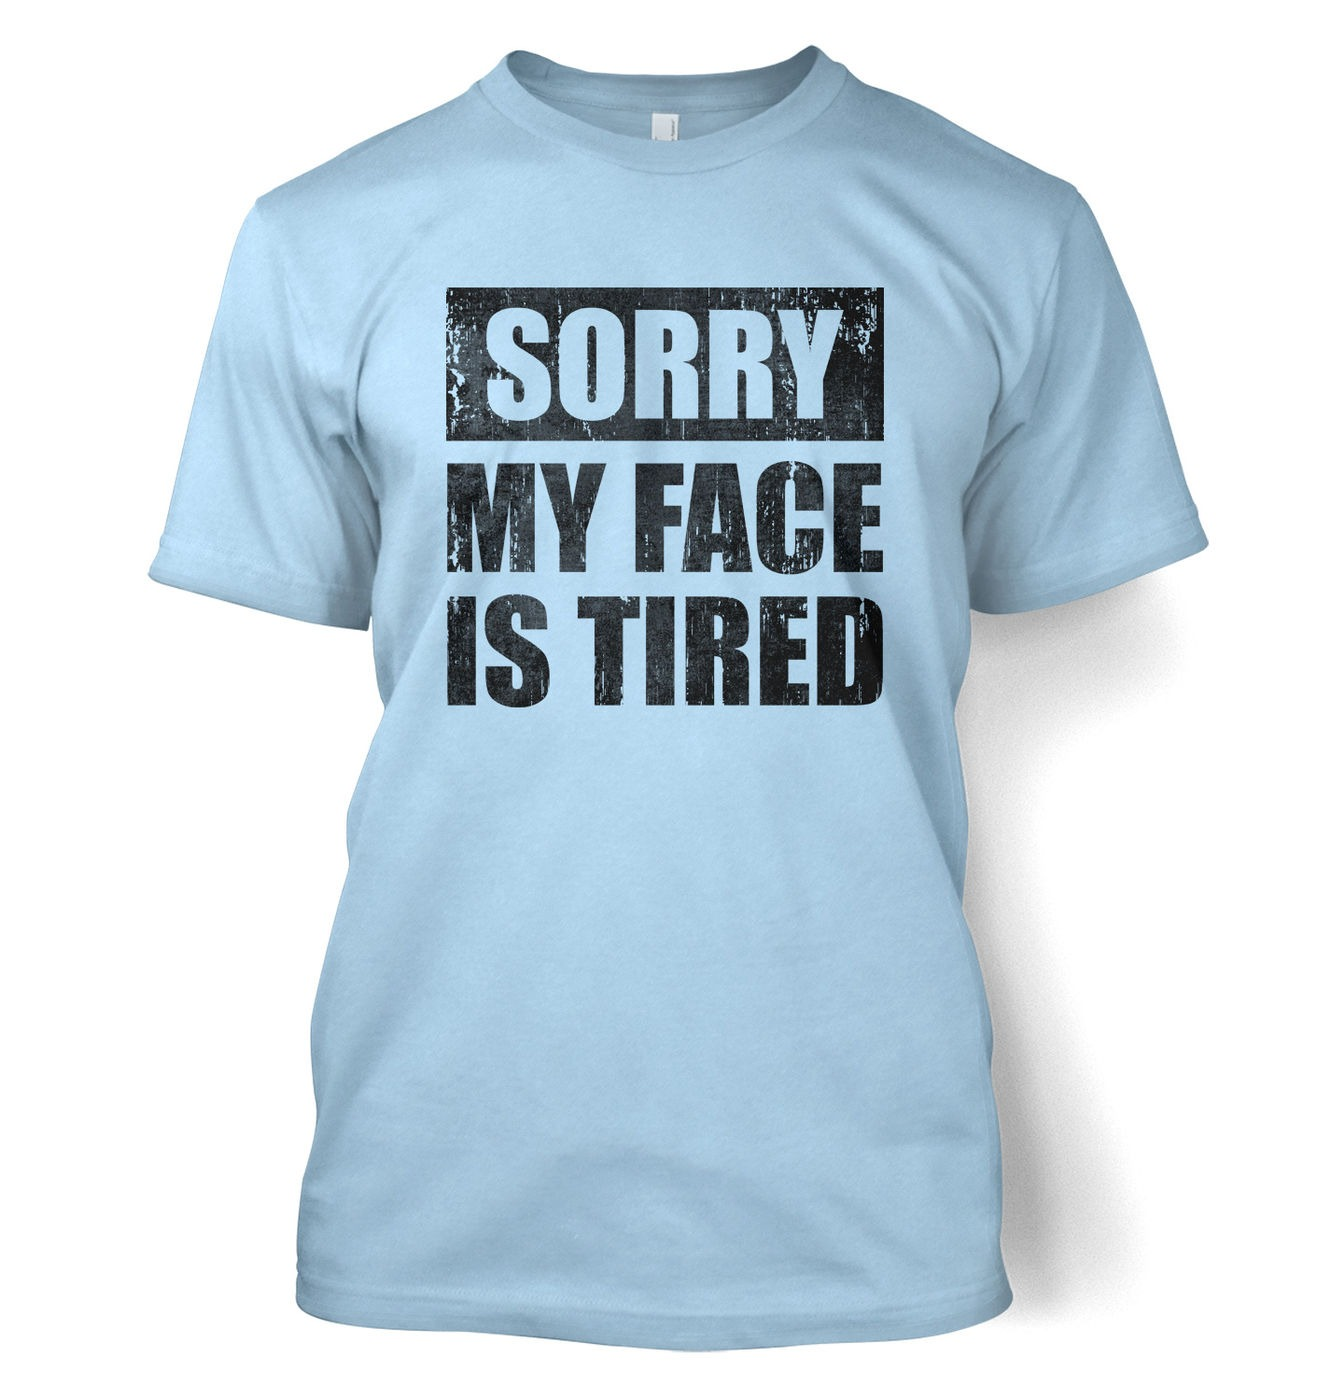 Sorry My Face Is Tired t-shirt by Something Geeky